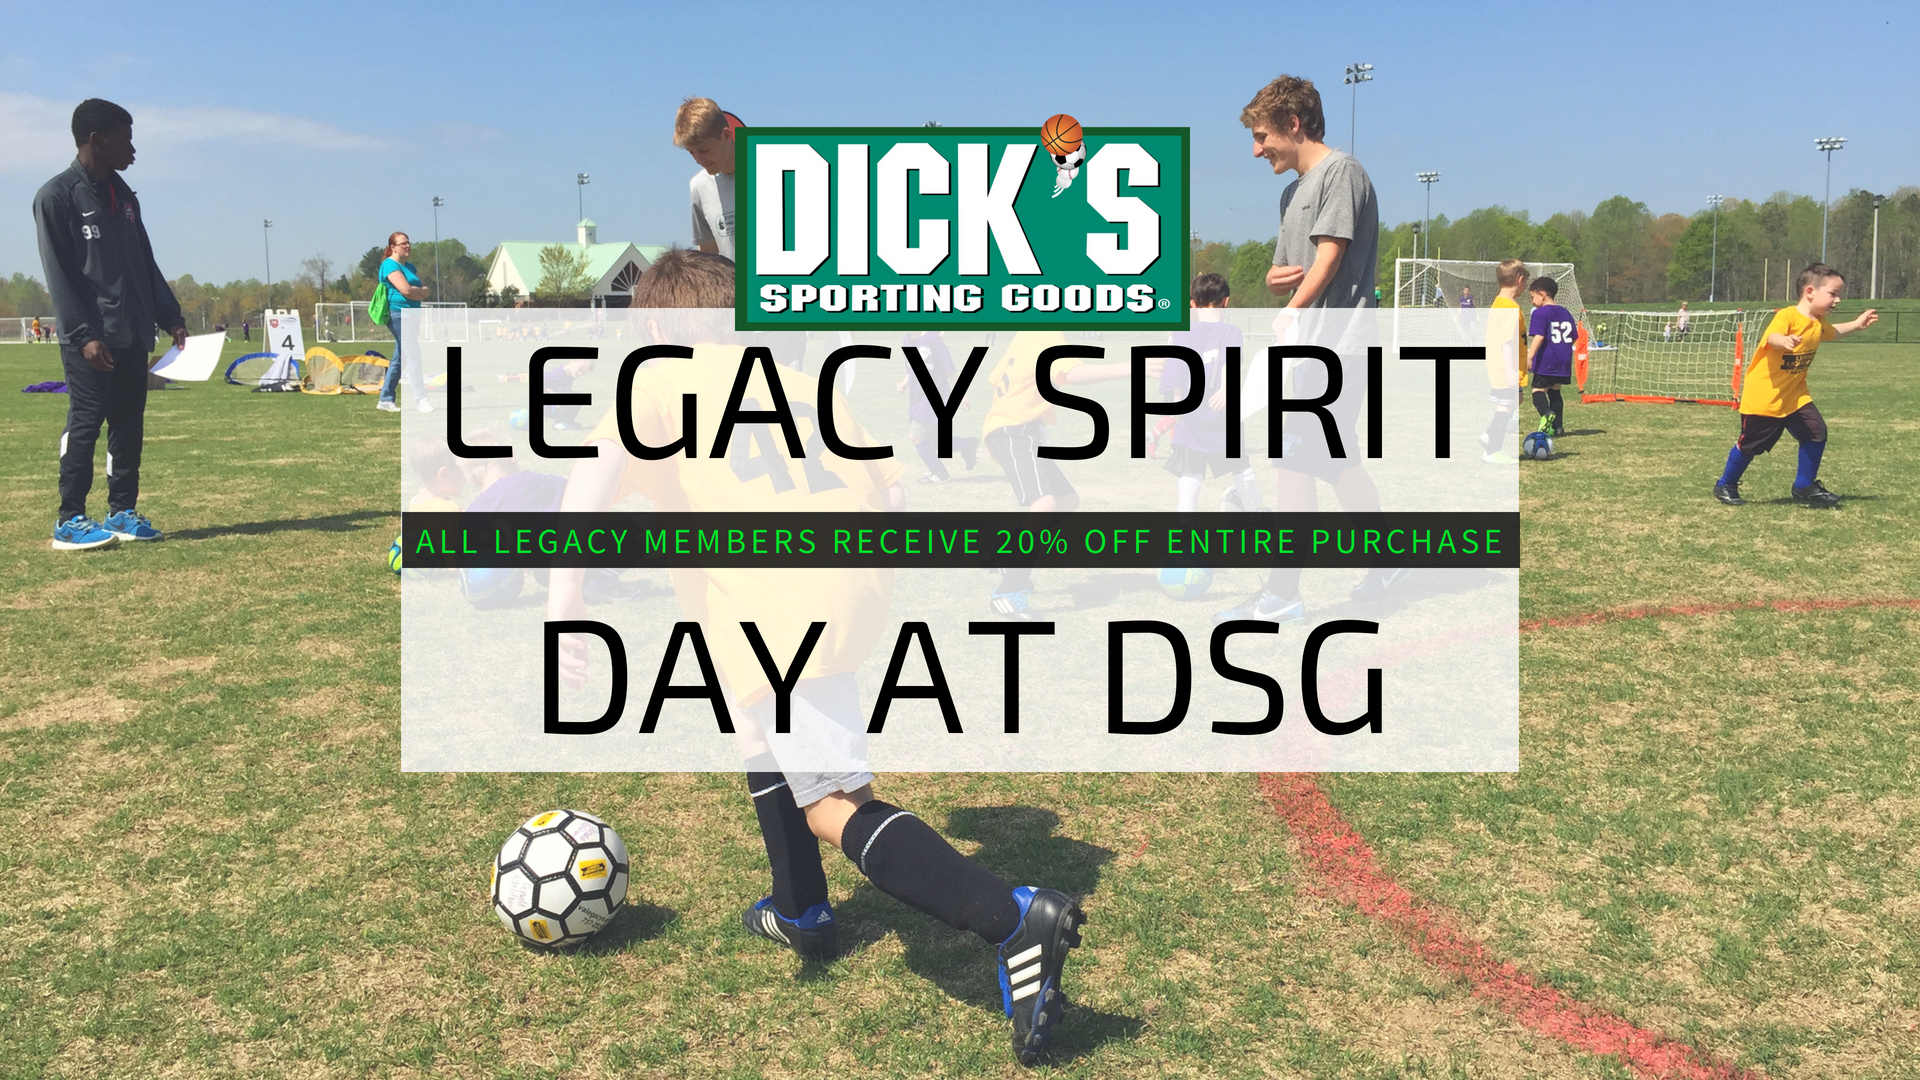 Legacy Spirit Day At DSG